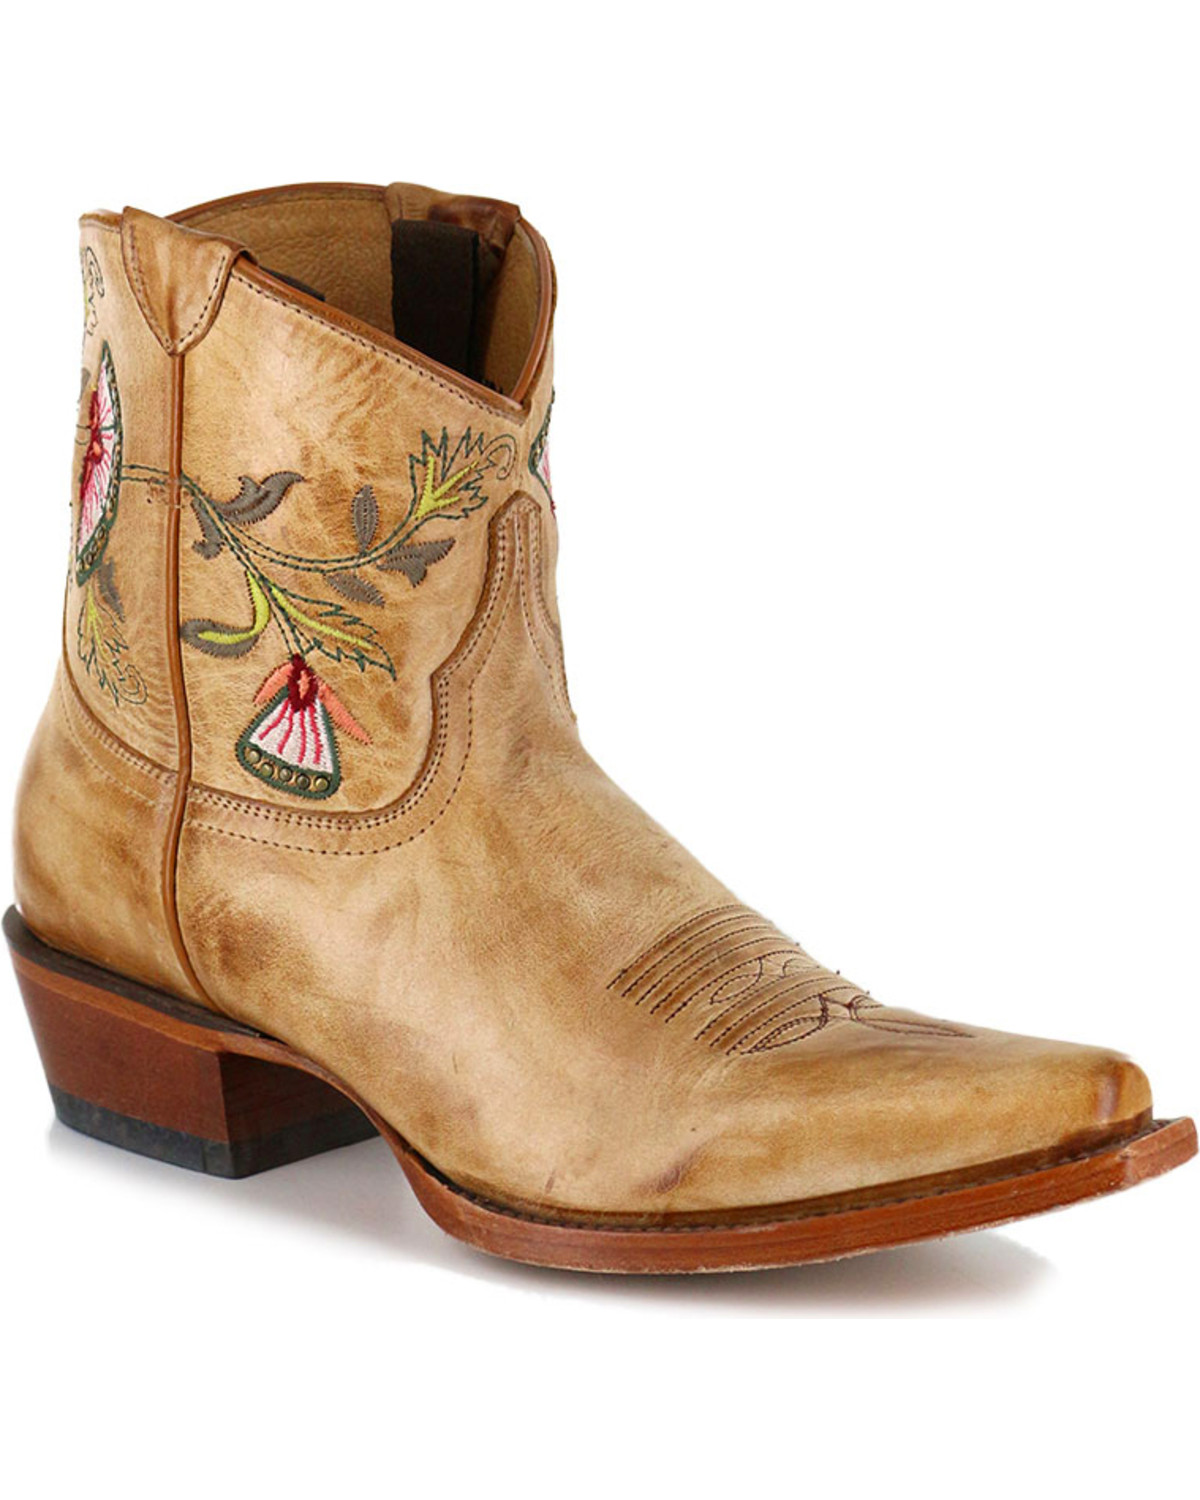 shyanne women 39 s floral embroidered western booties boot barn. Black Bedroom Furniture Sets. Home Design Ideas